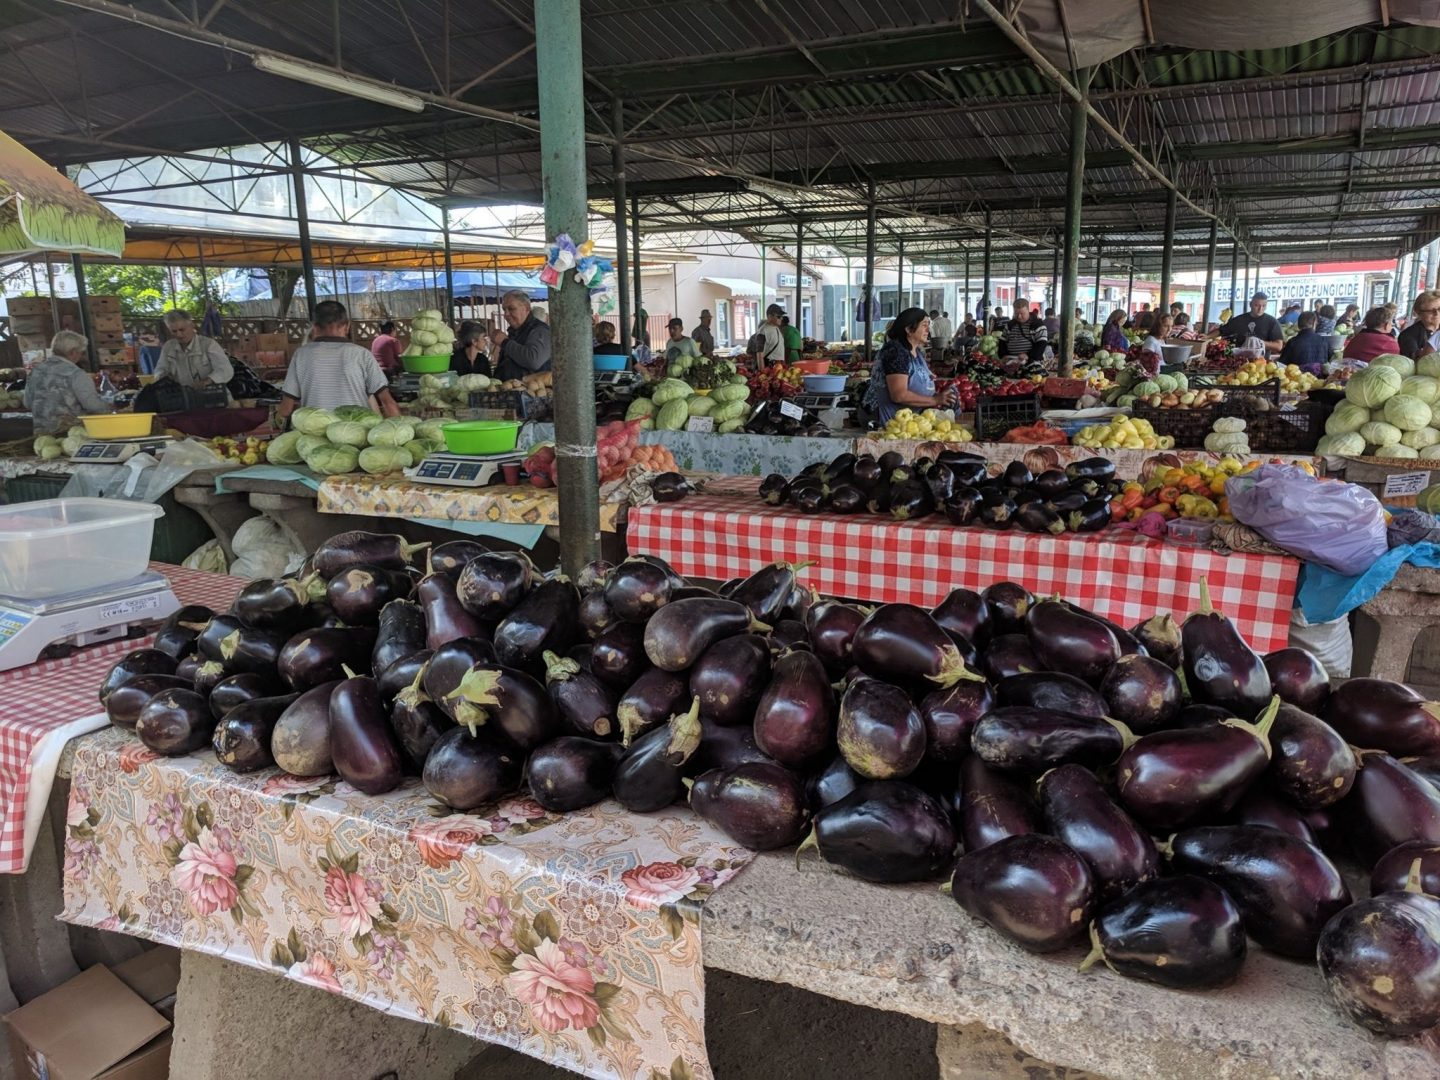 CLuj-Napoca things to do: aubergines at Turda market